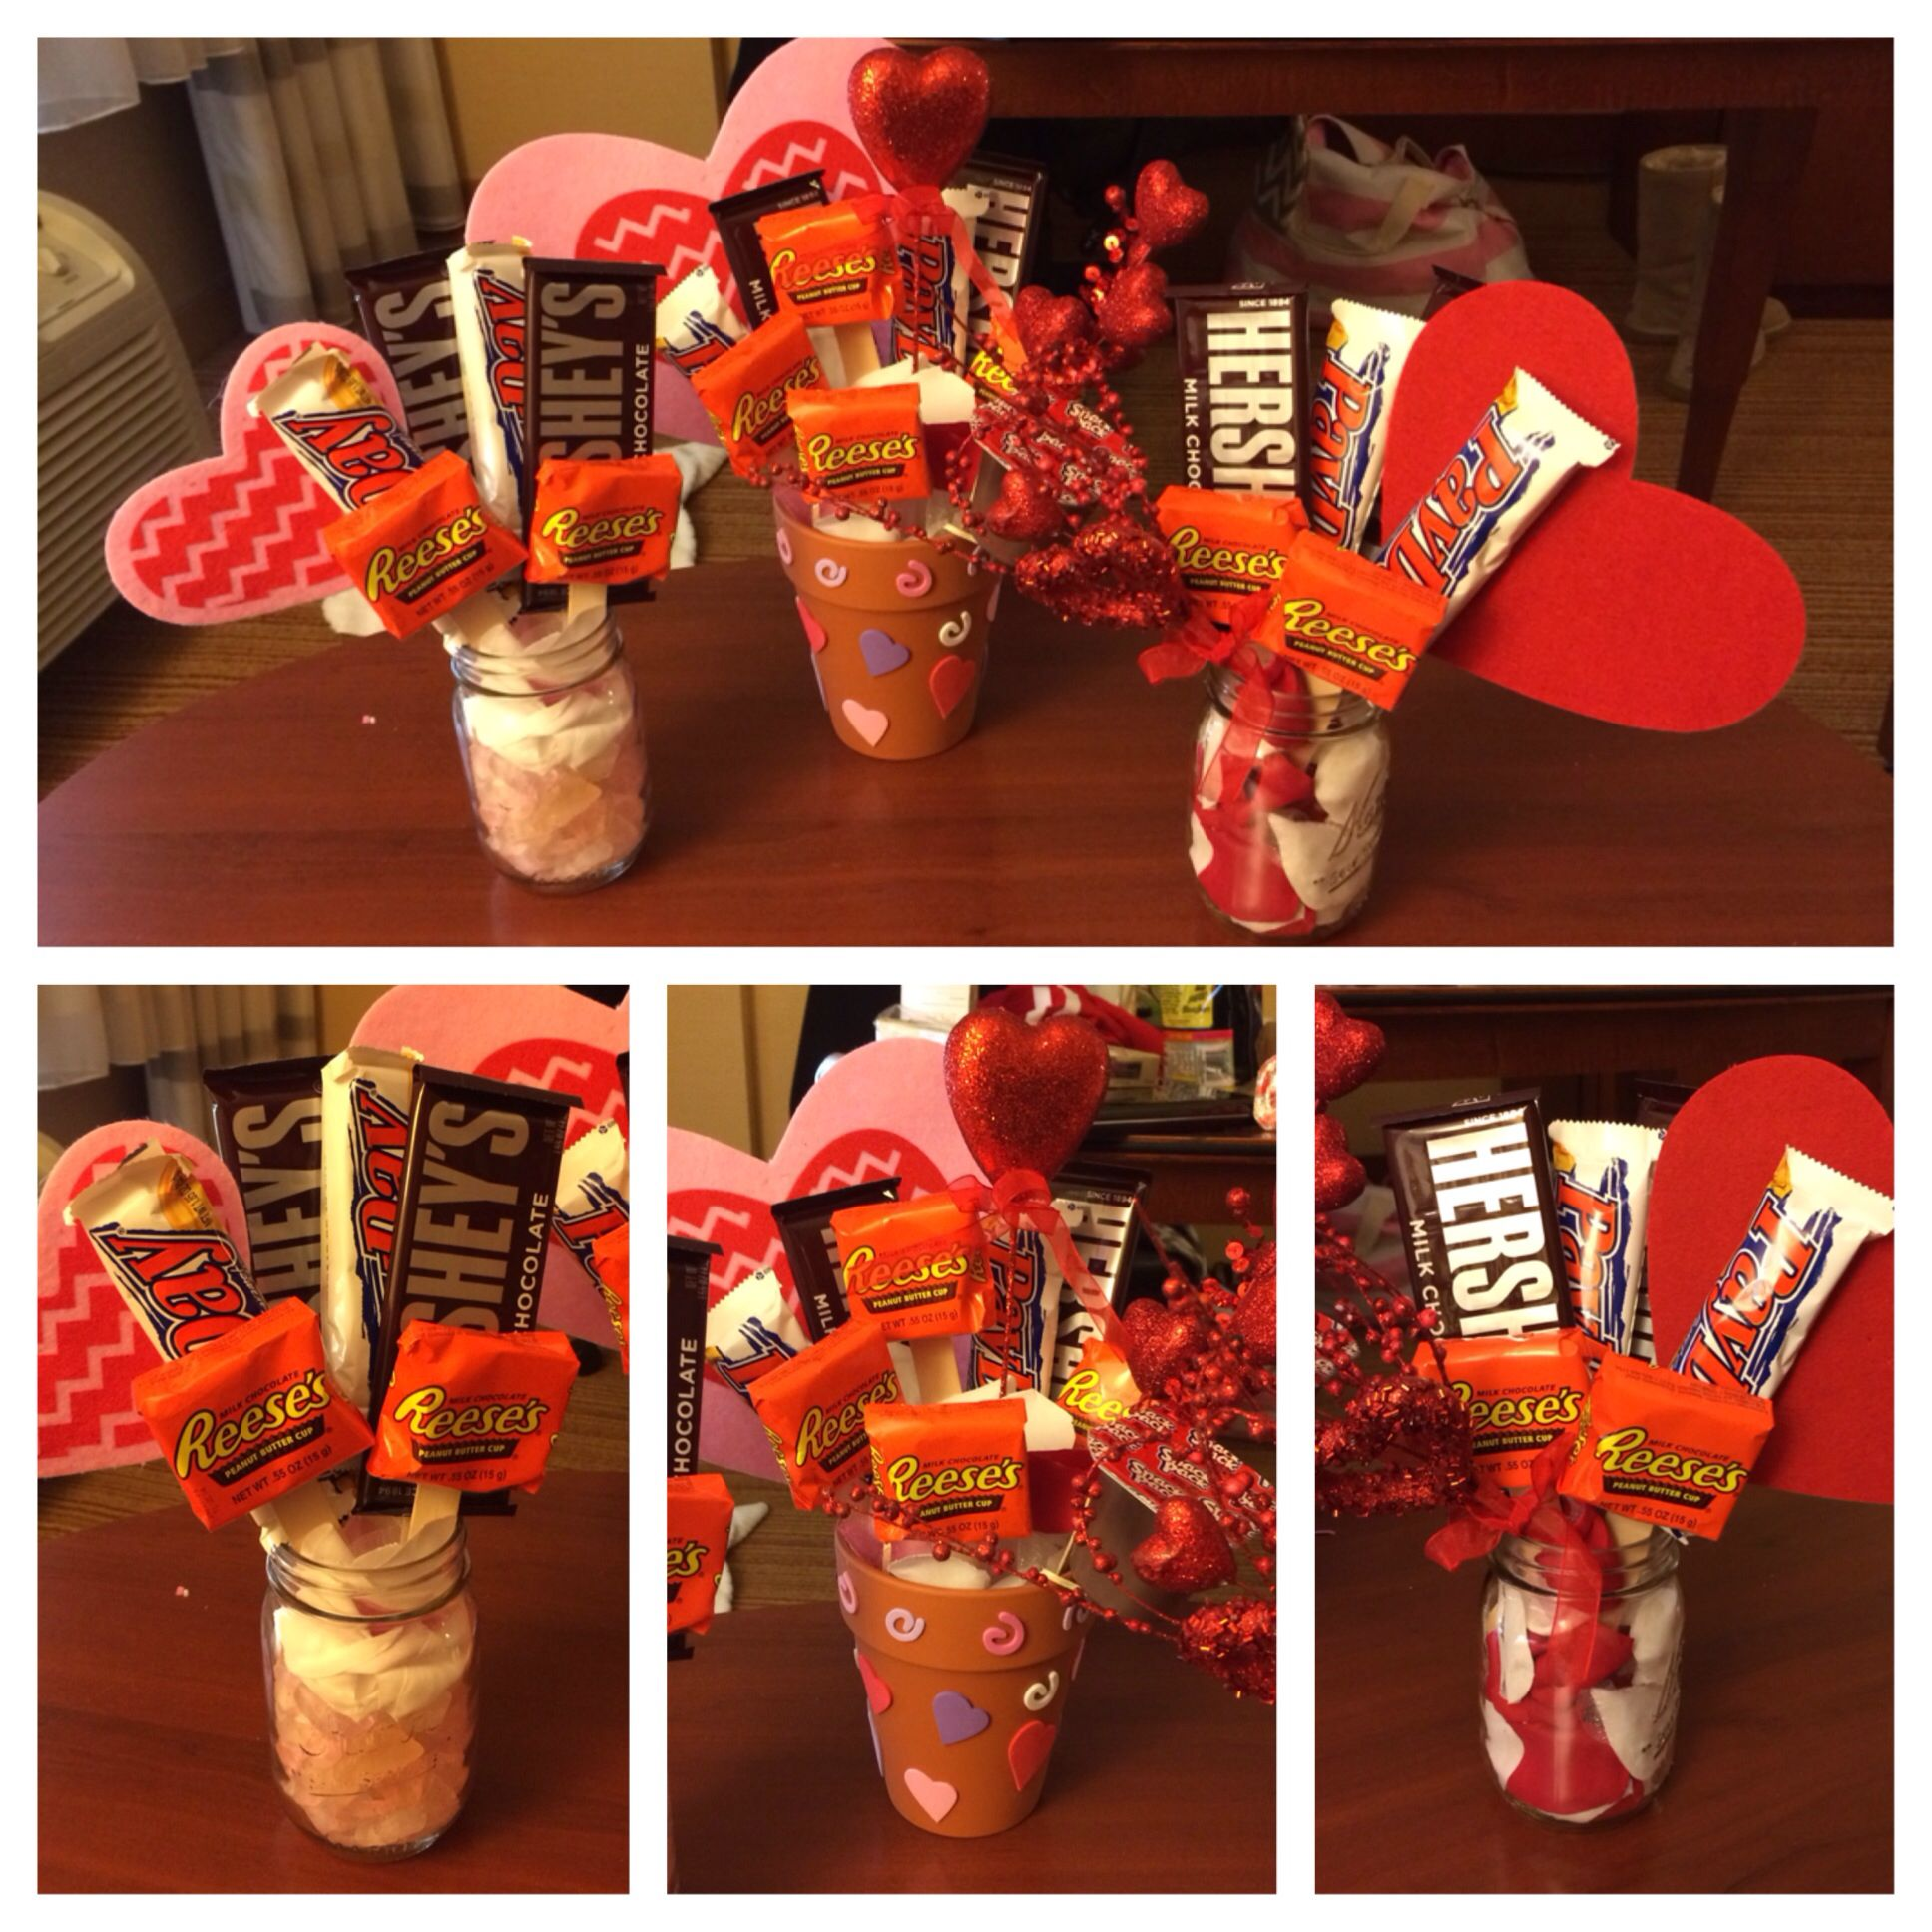 Valentines day candy bouquet in flower pot and Manson jars mmmm ...